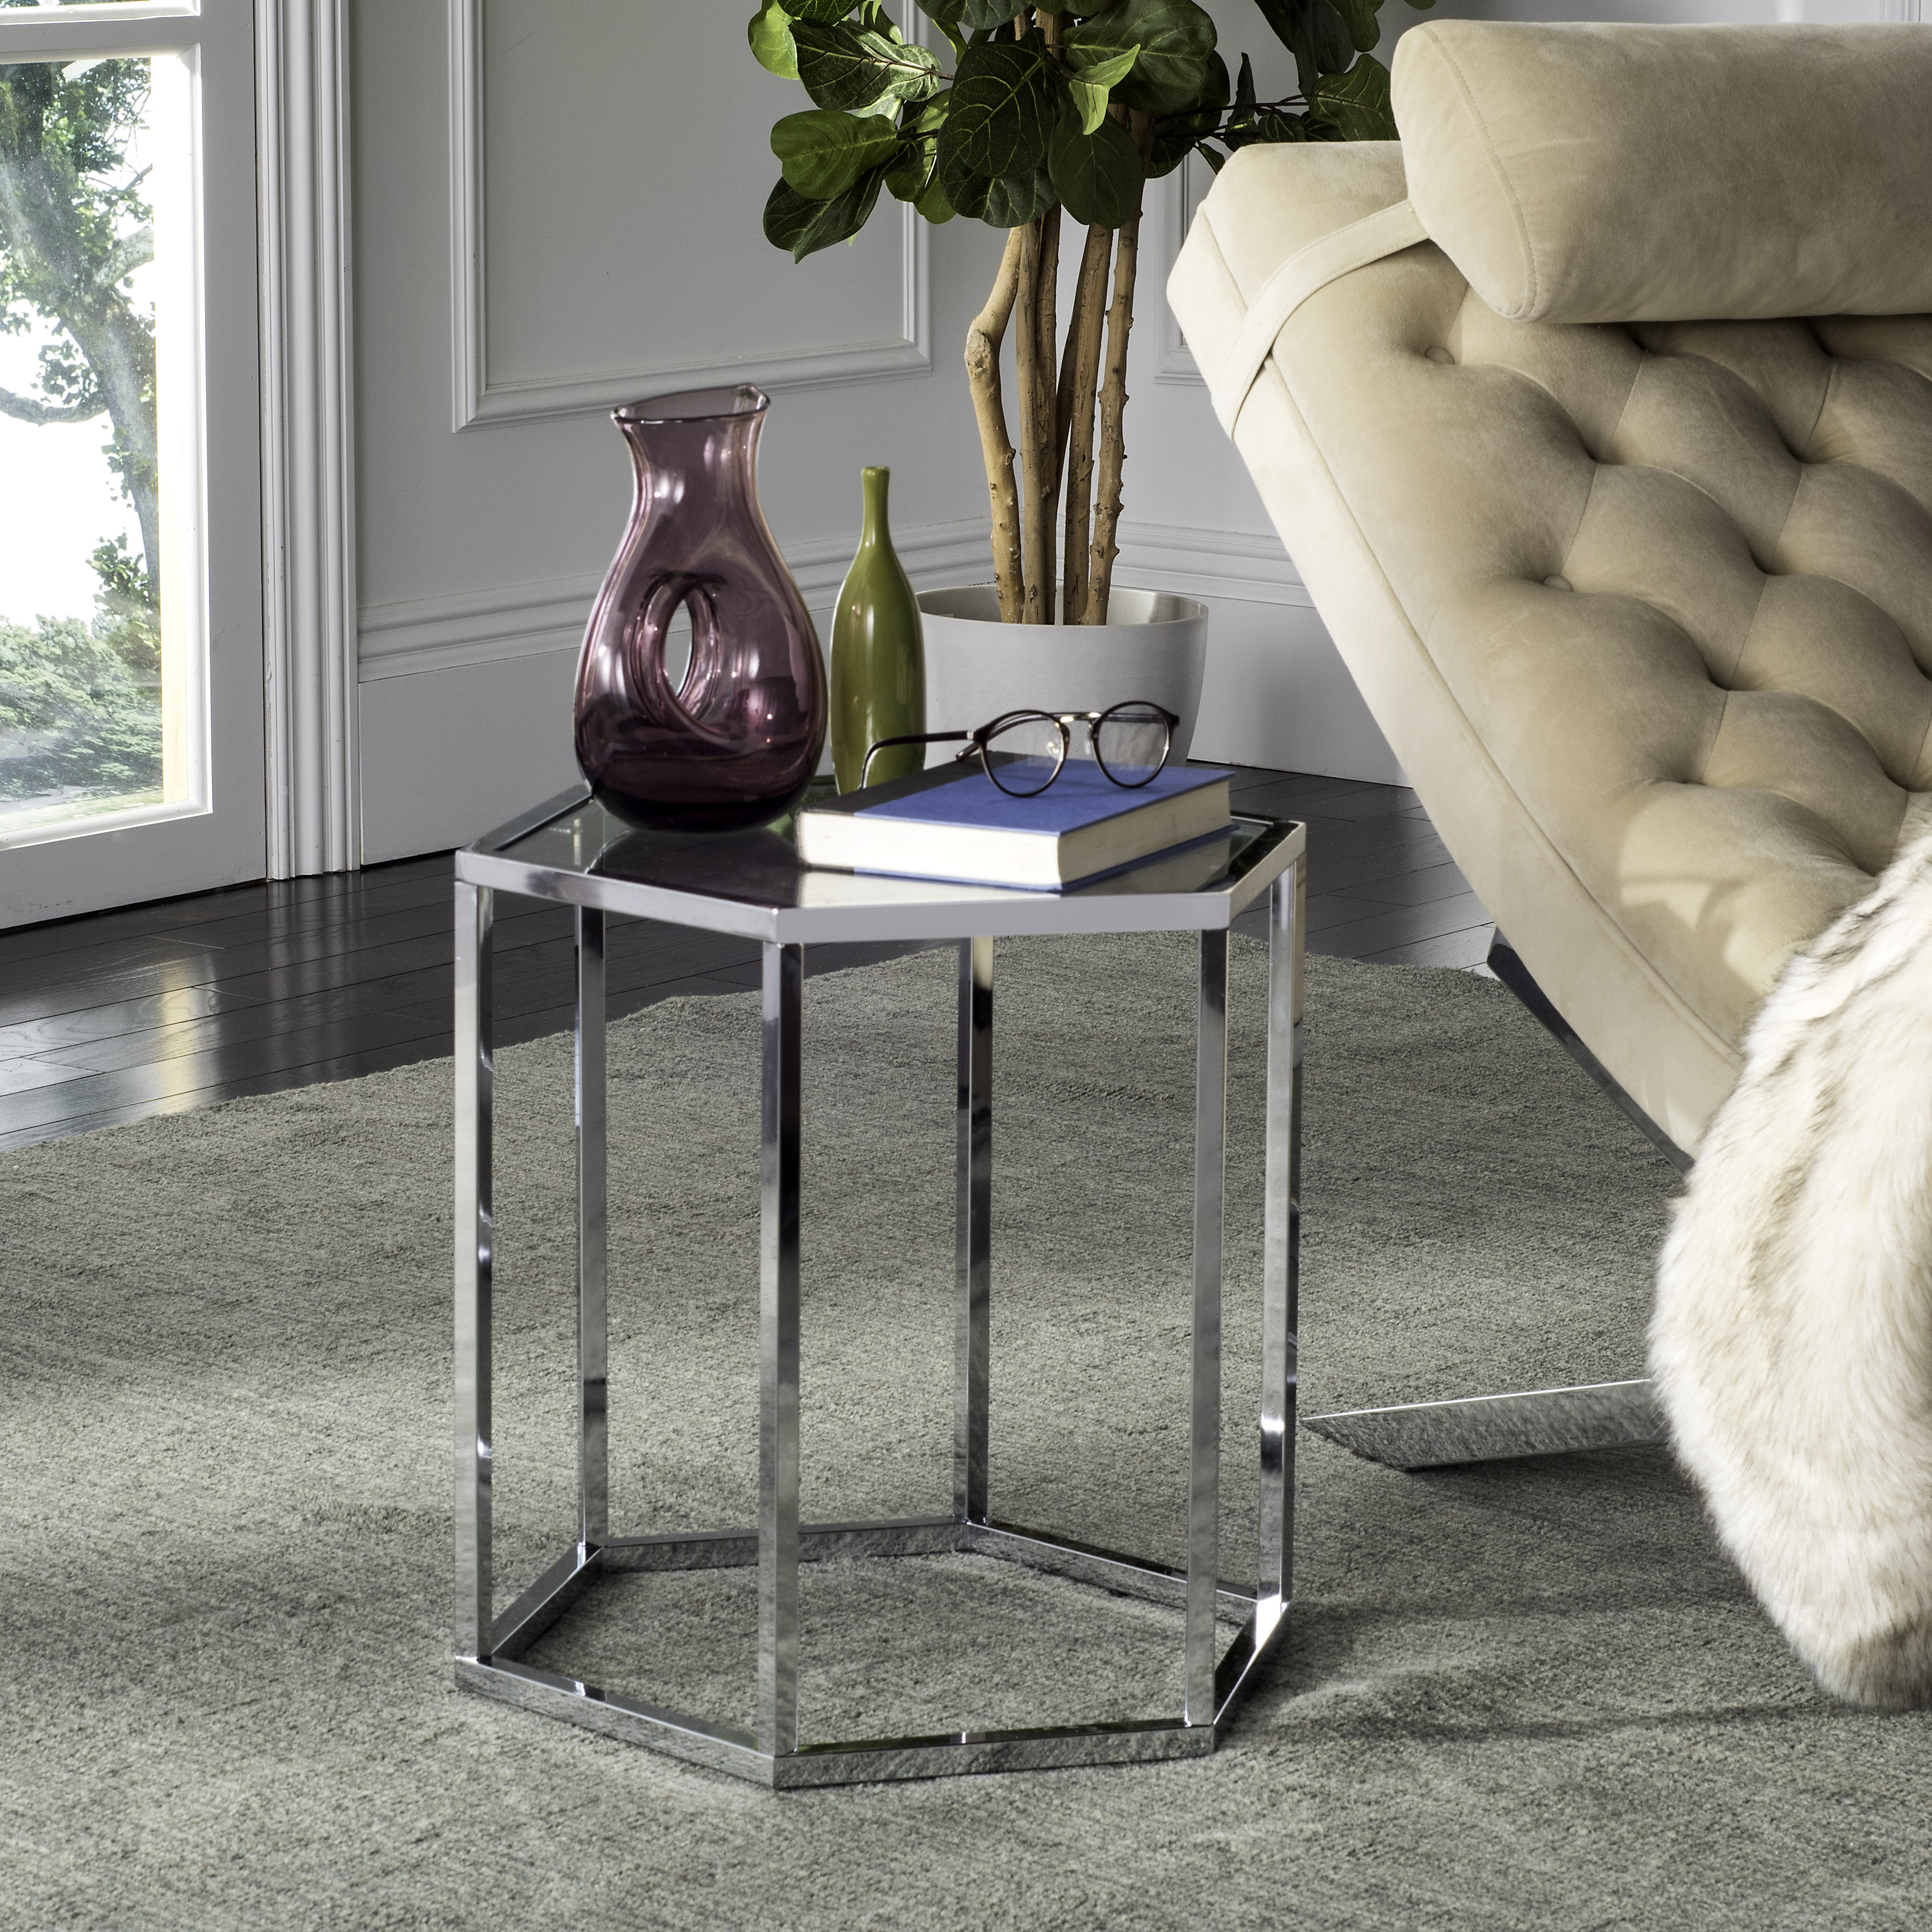 Safavieh Teagan Hexagon Glass End Table, Chrome